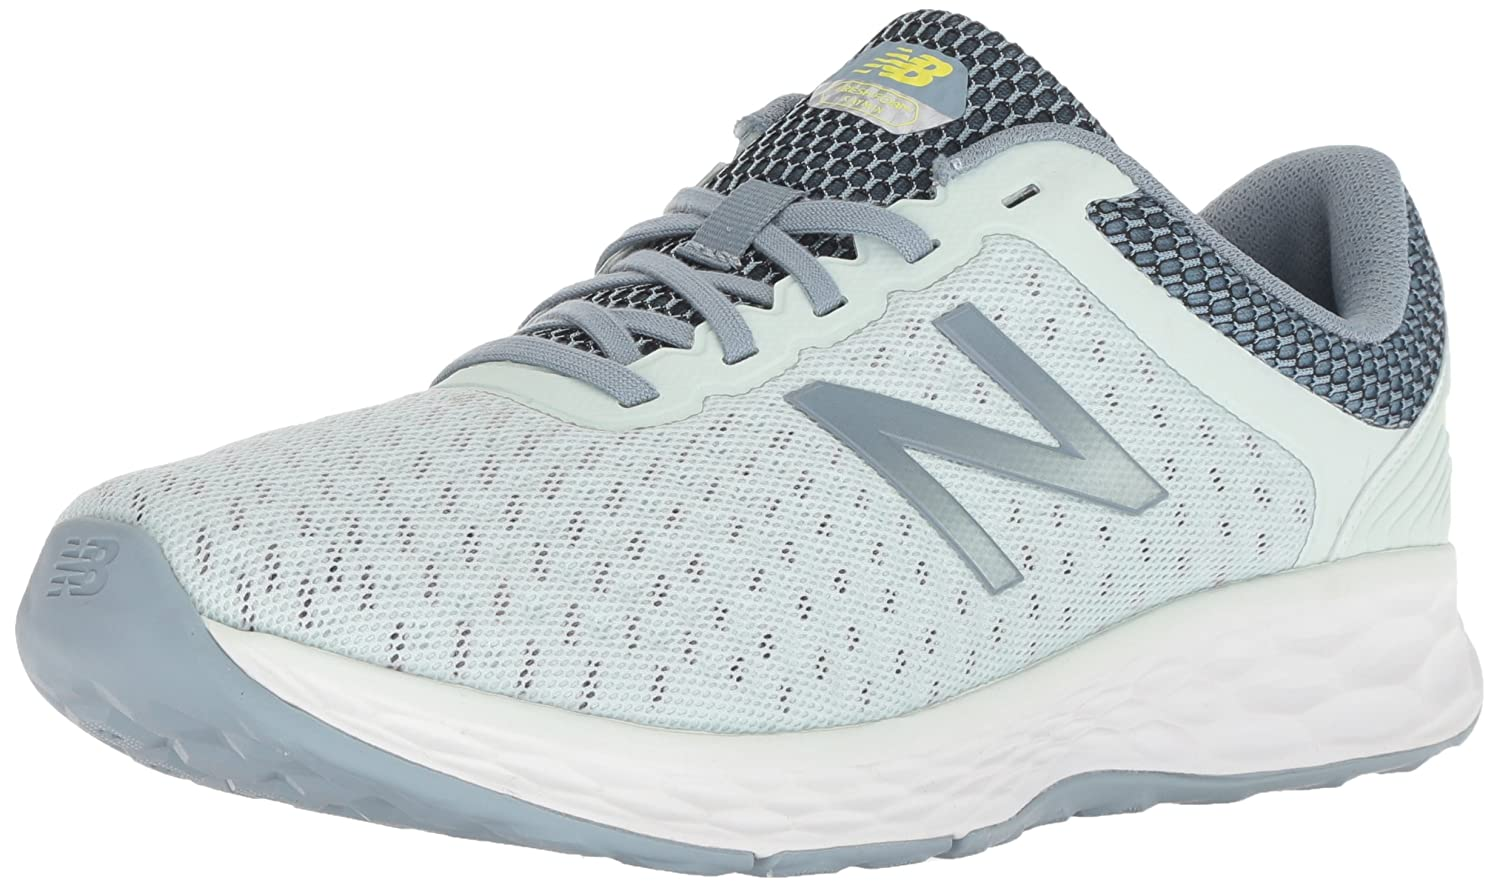 New Balance Women's Kaymin Trail v1 Fresh Foam Trail Running Shoe B075R755FR 8 D US|Ocean Air